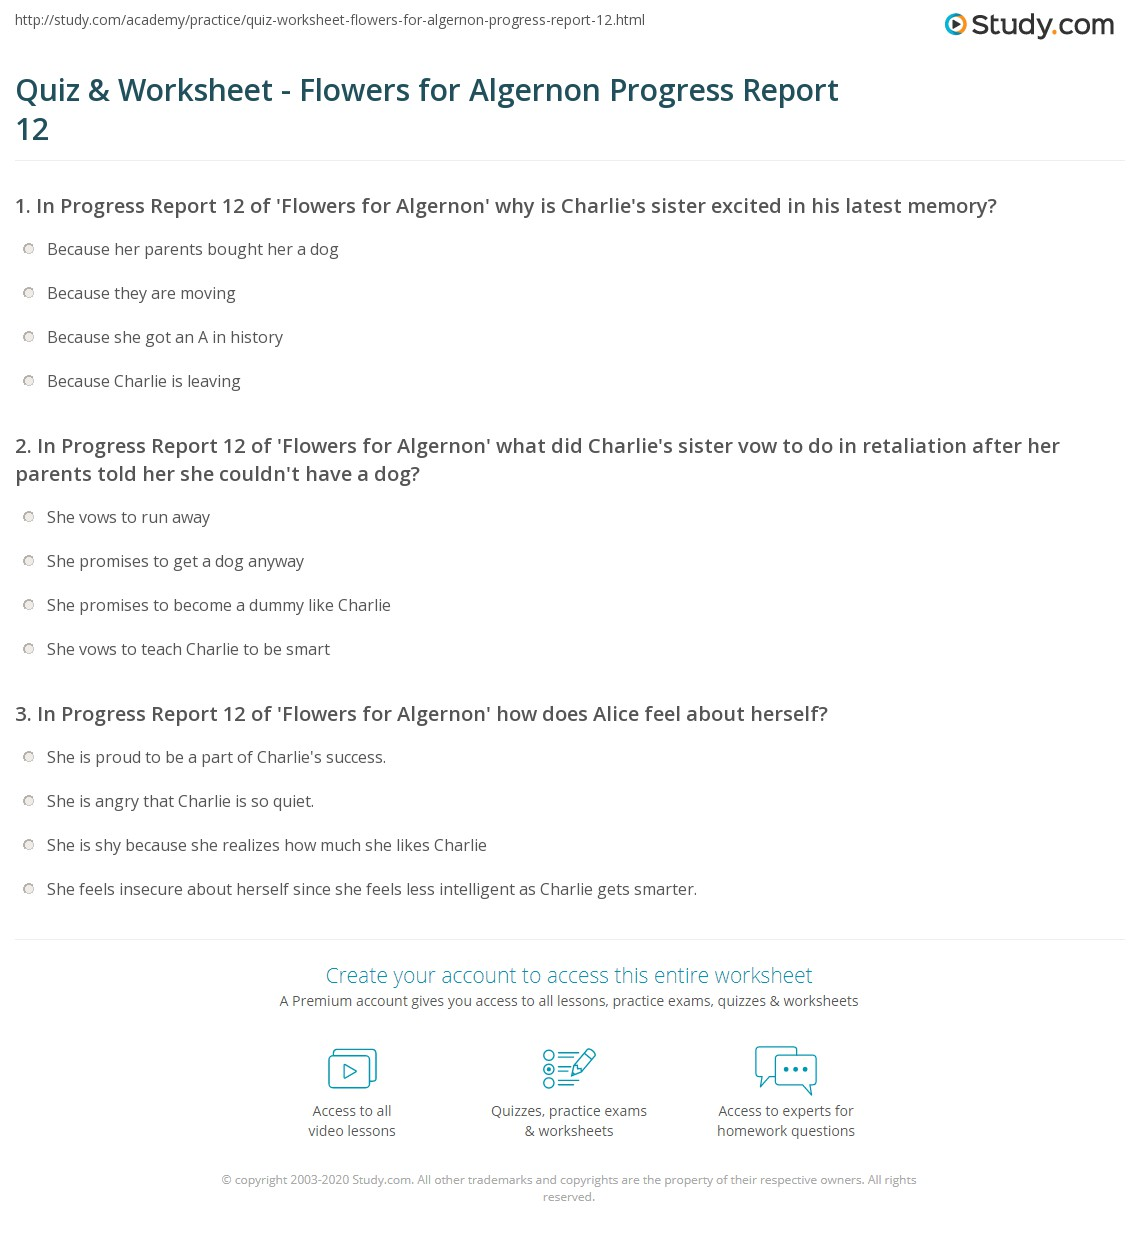 quiz worksheet flowers for algernon progress report com print flowers for algernon progress report 12 summary worksheet